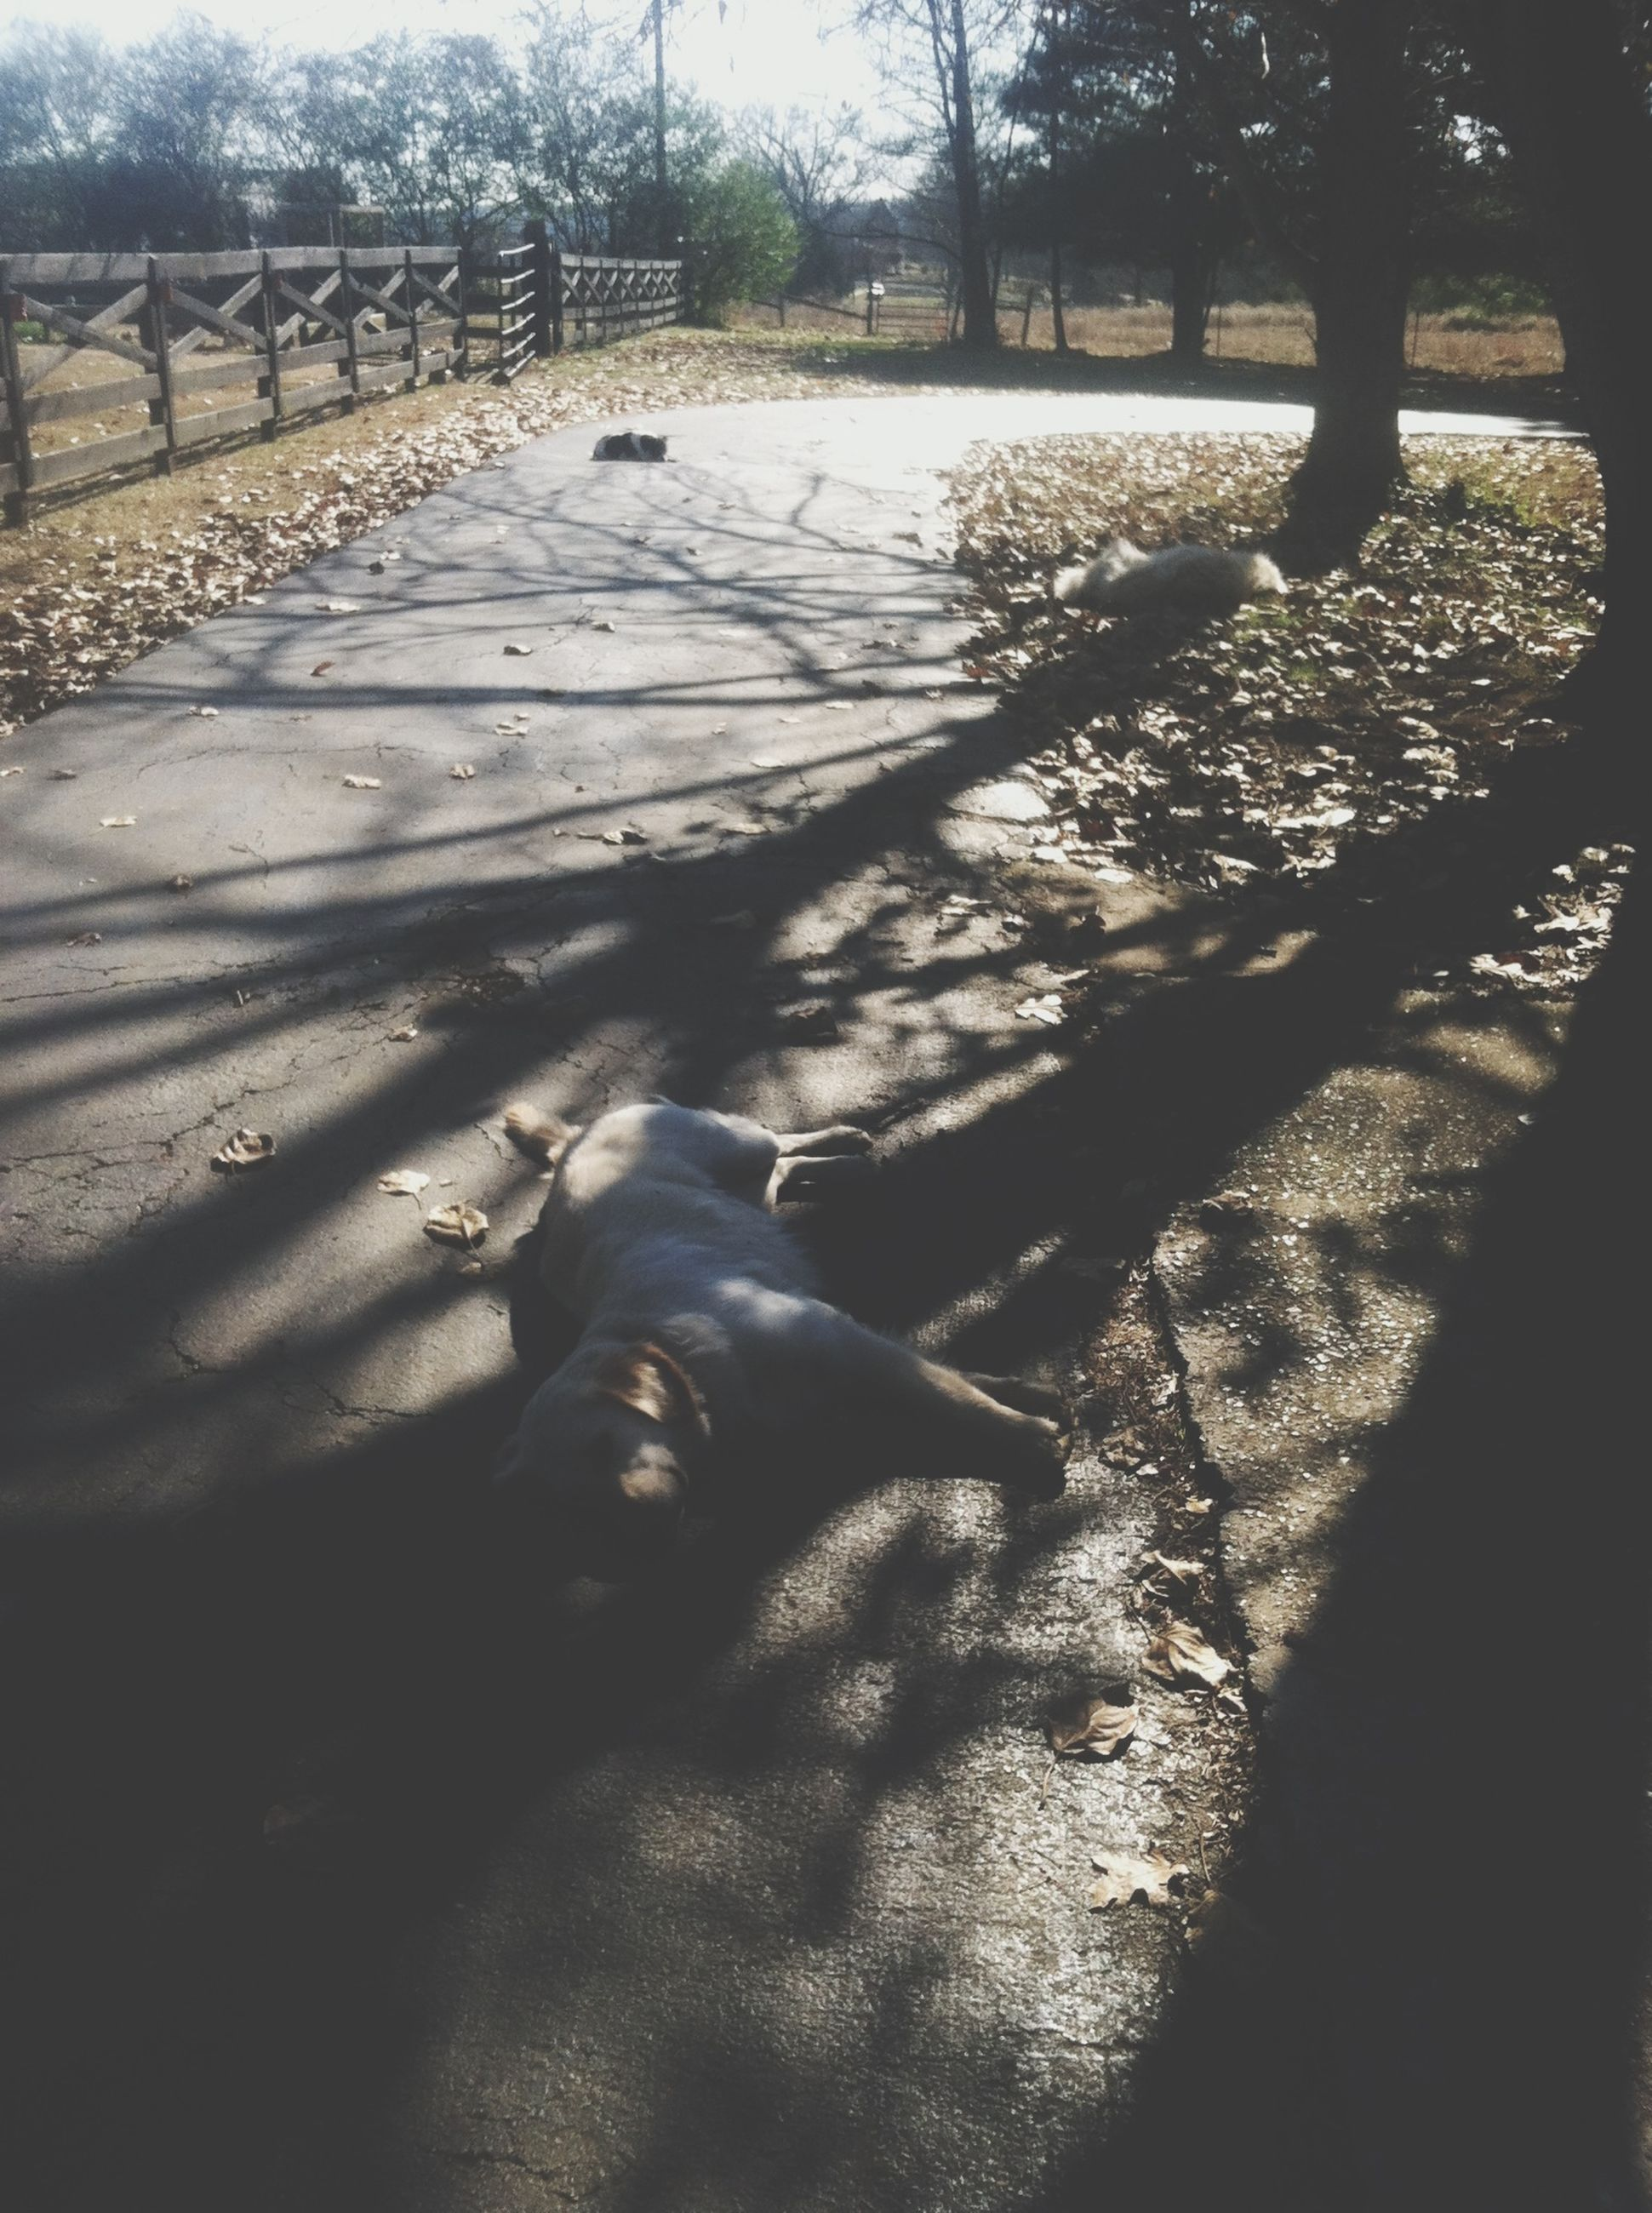 tree, shadow, sunlight, park - man made space, sand, transportation, high angle view, outdoors, day, incidental people, nature, road, street, animal themes, field, footpath, fence, the way forward